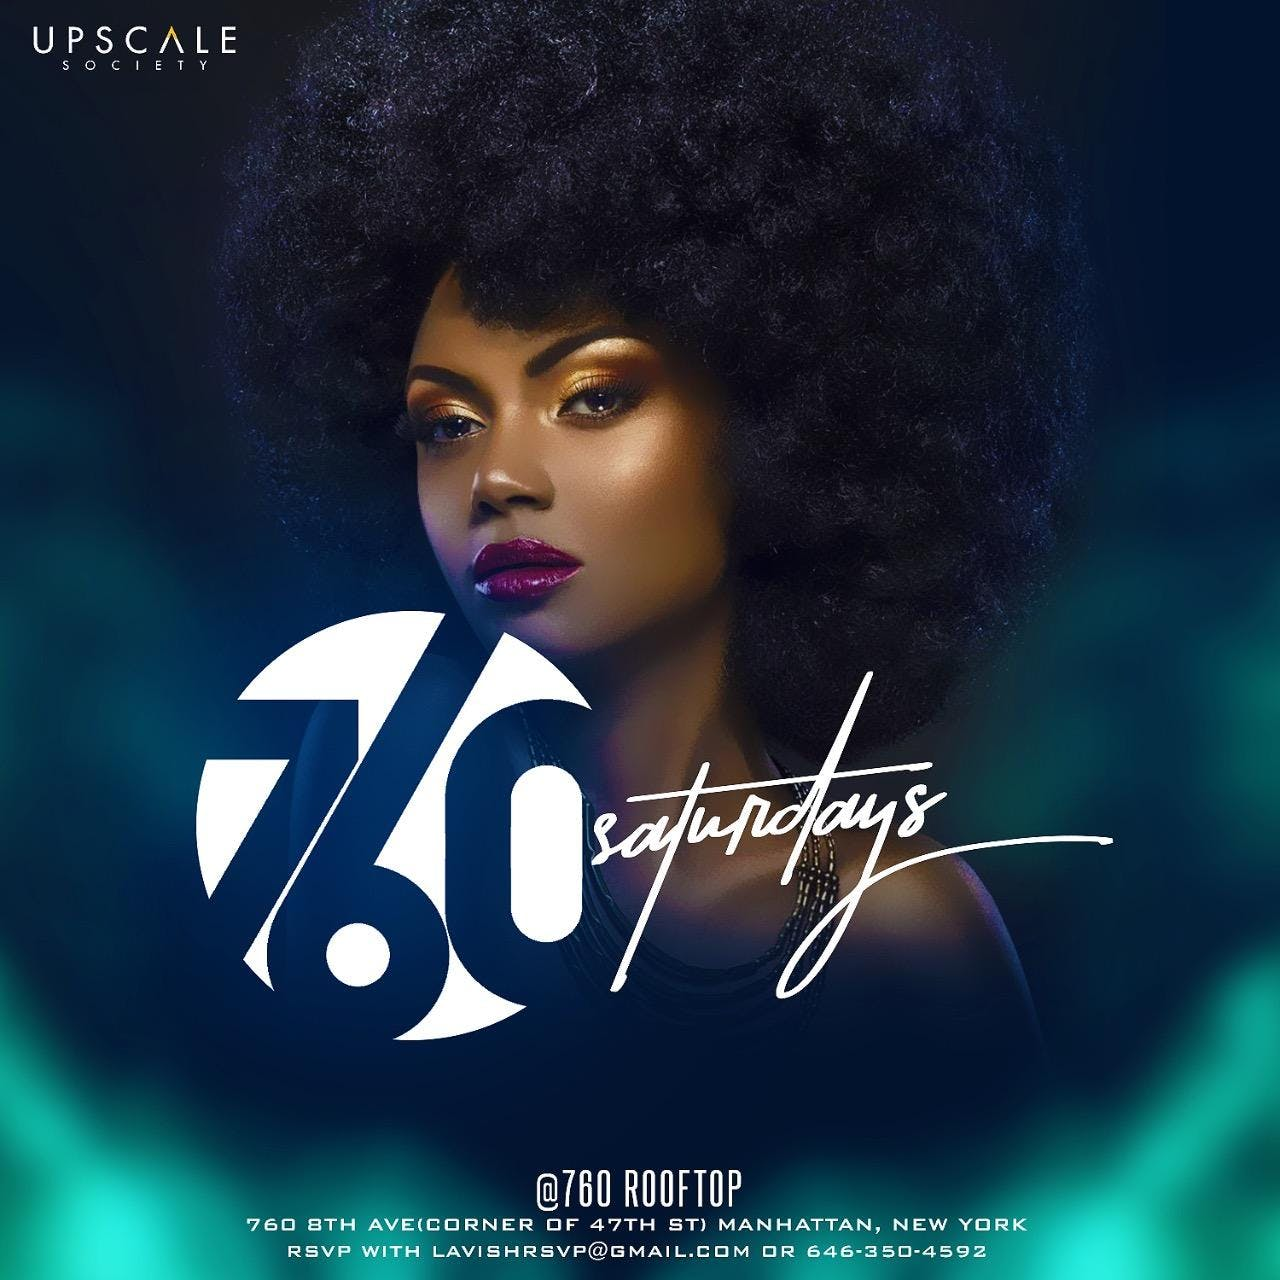 760 Saturdays by The Upscale Society